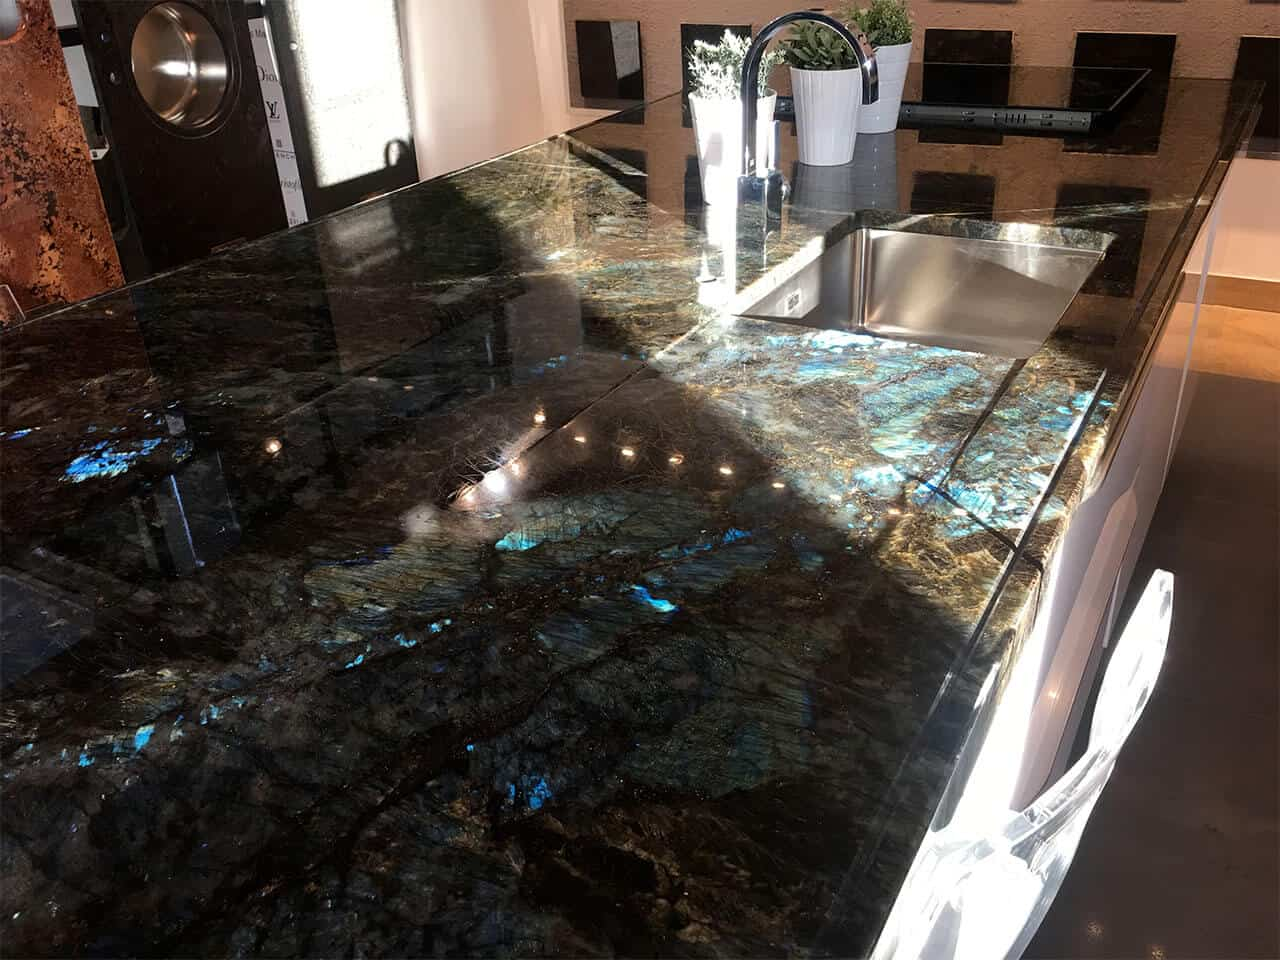 Mdy Pont L Eveque marble, granite, tiles and kitchen worktop | mdy france